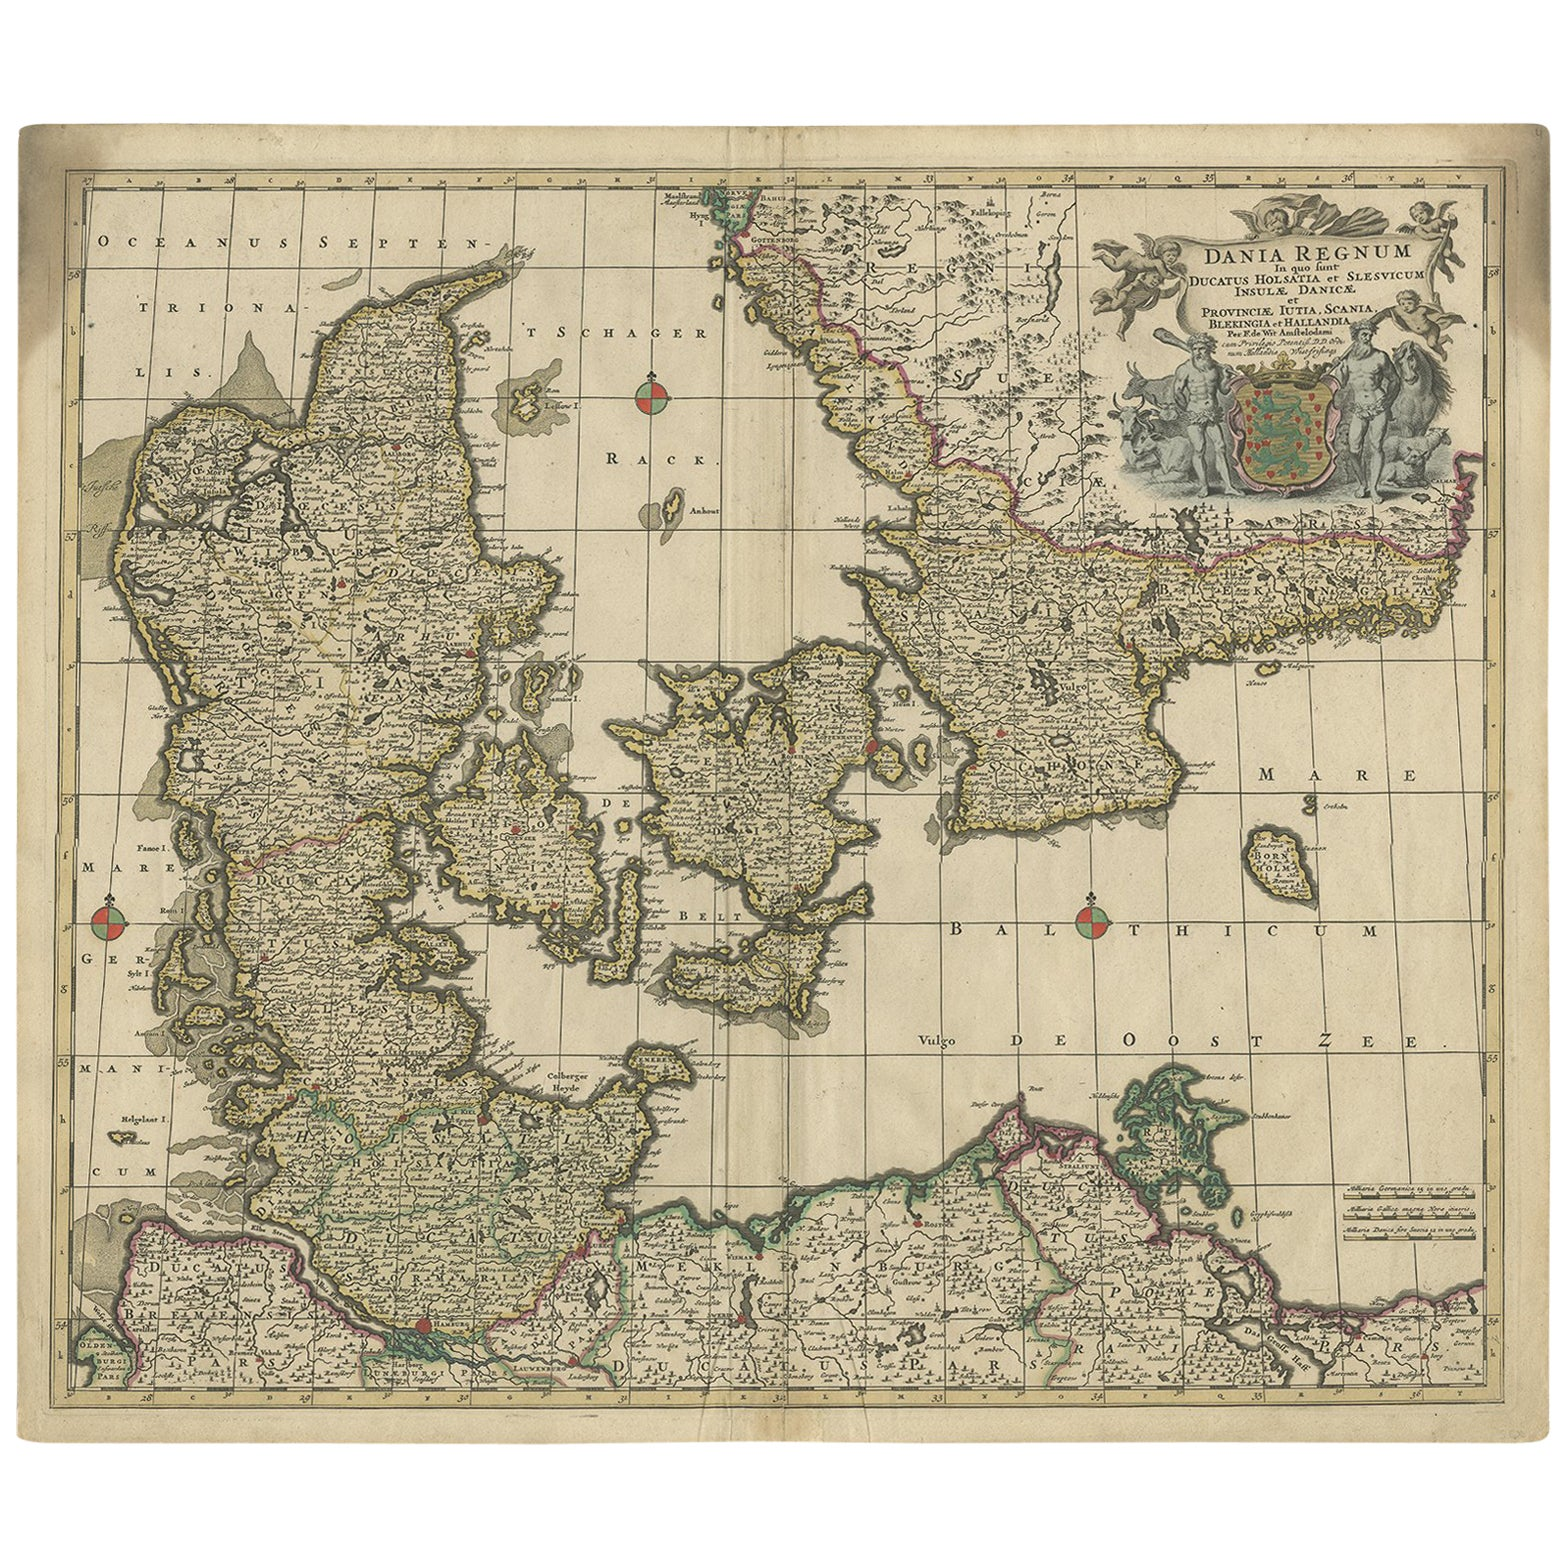 Antique Map of Denmark by F. de Wit, 1680